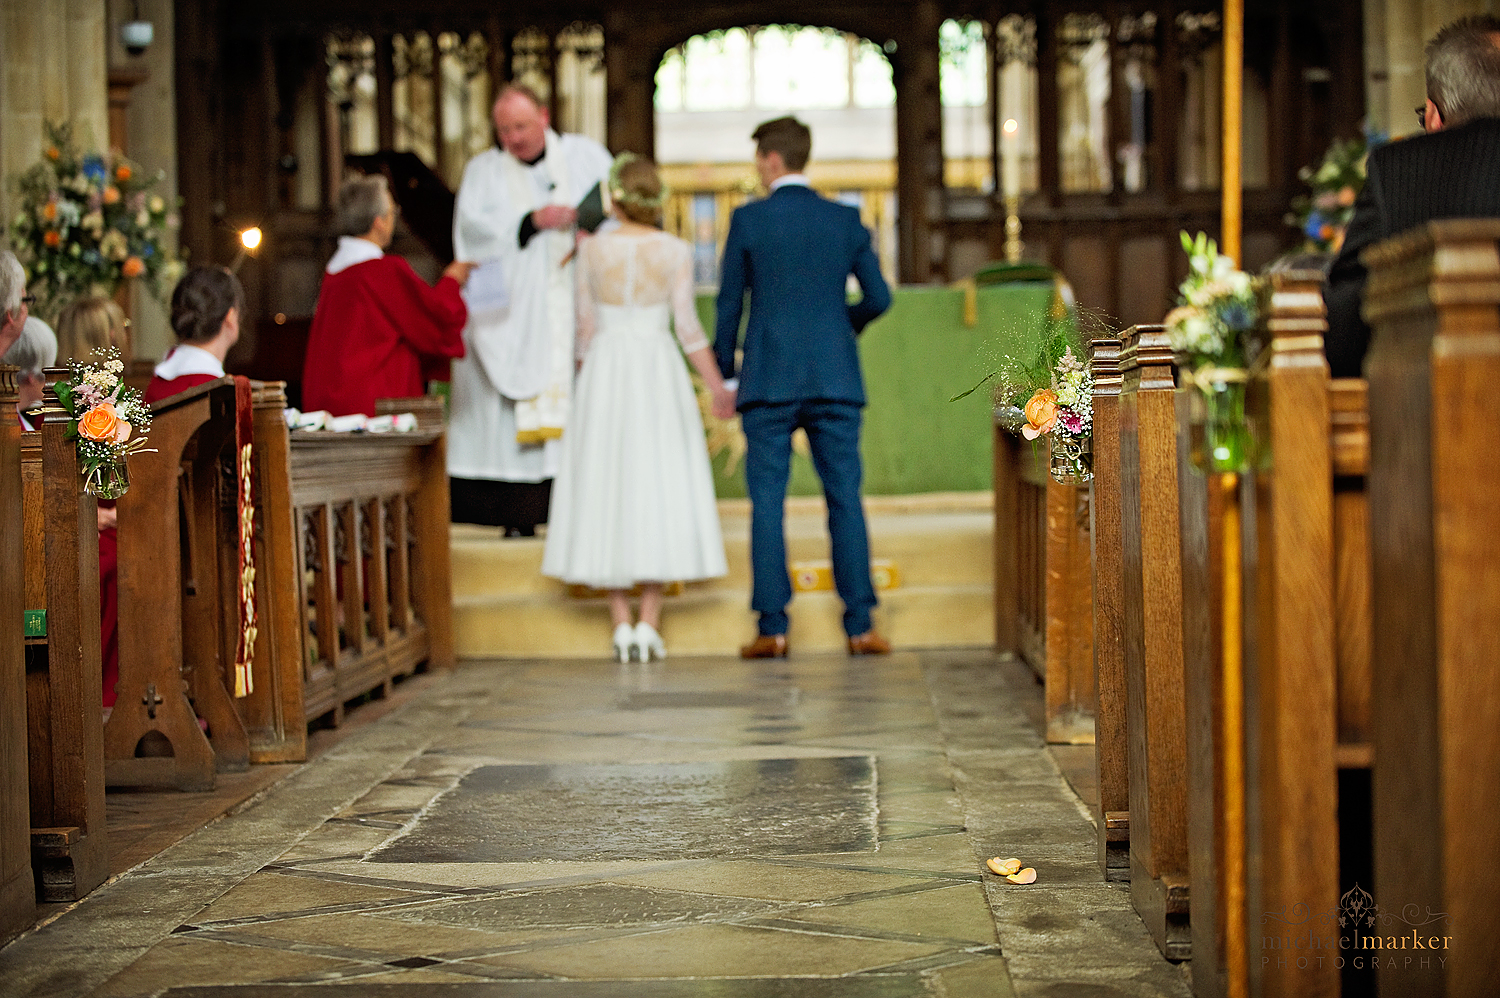 Bride and groom at Wiltshire Church wedding